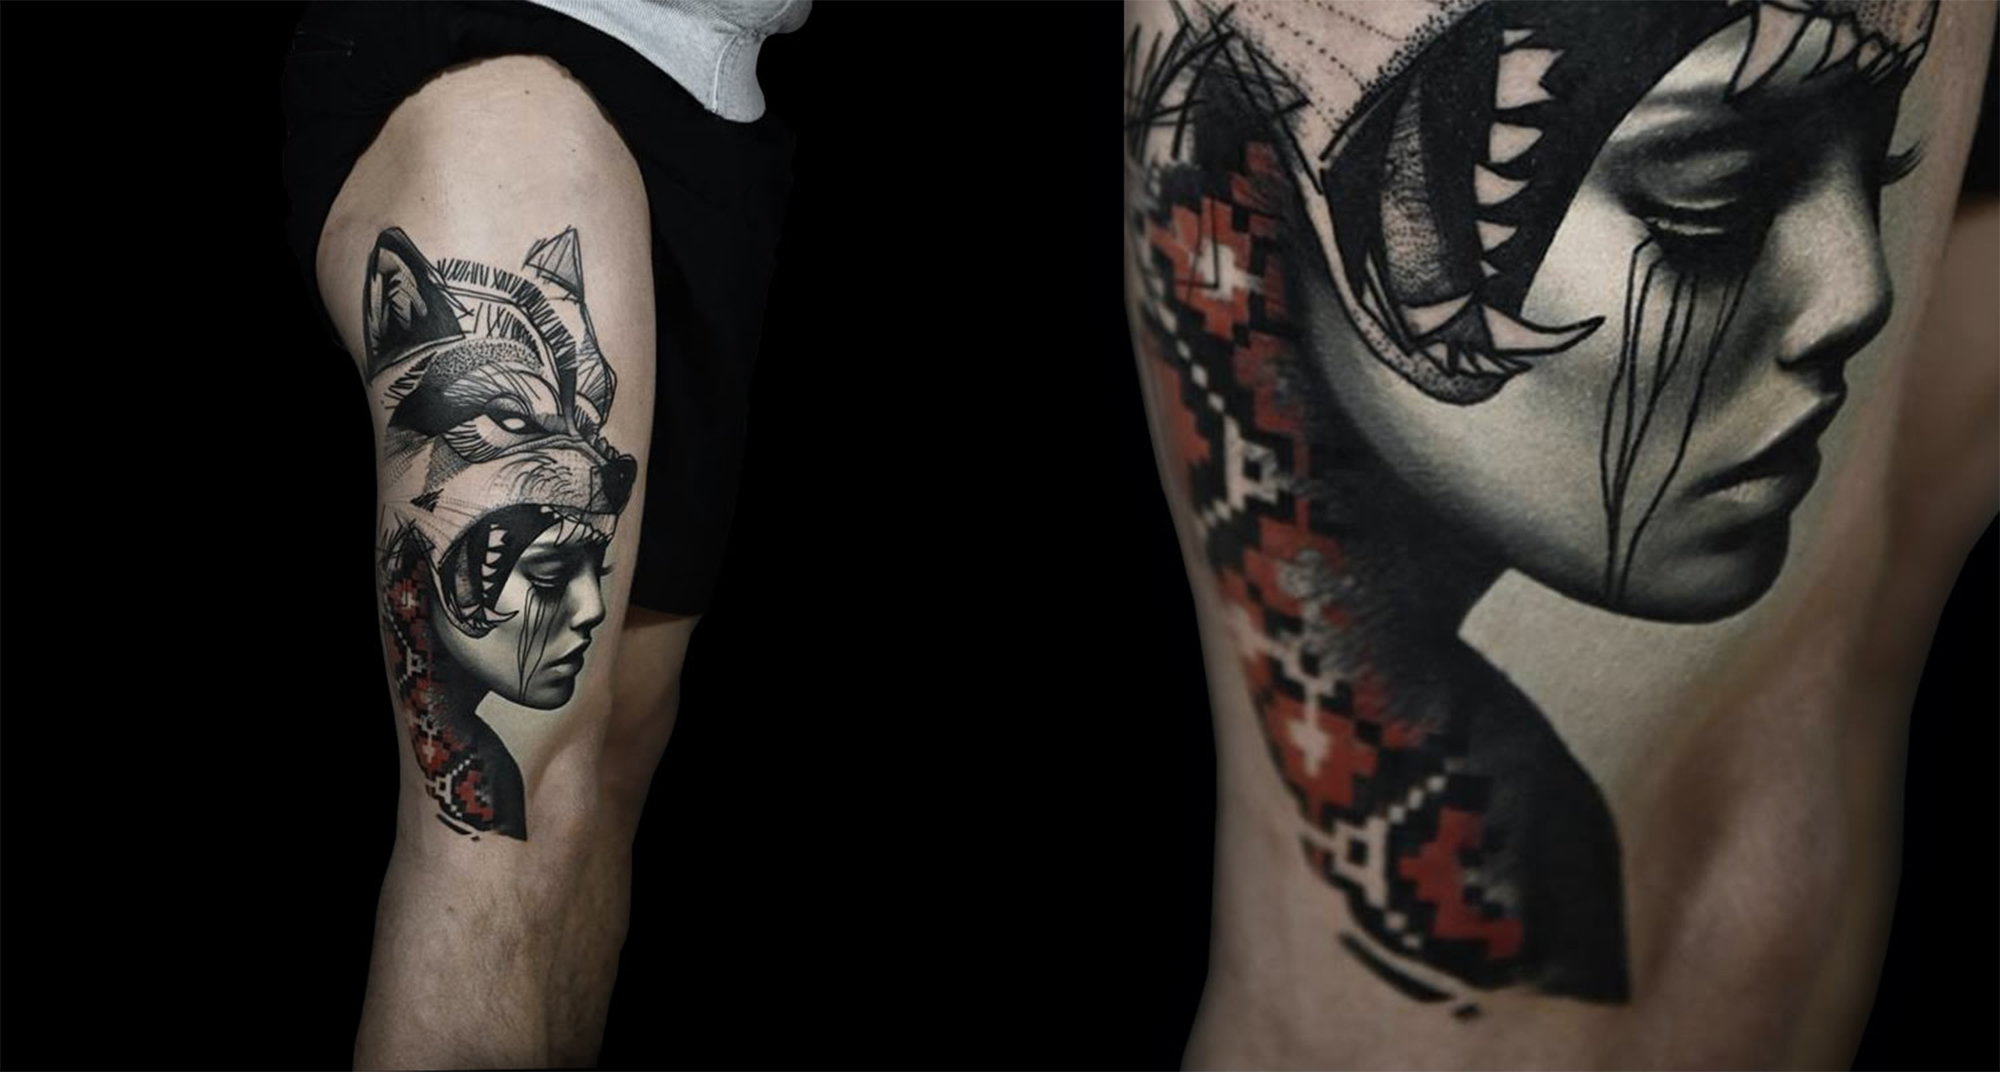 13 Best Tattoo Artists of 2015—Editor's Picks